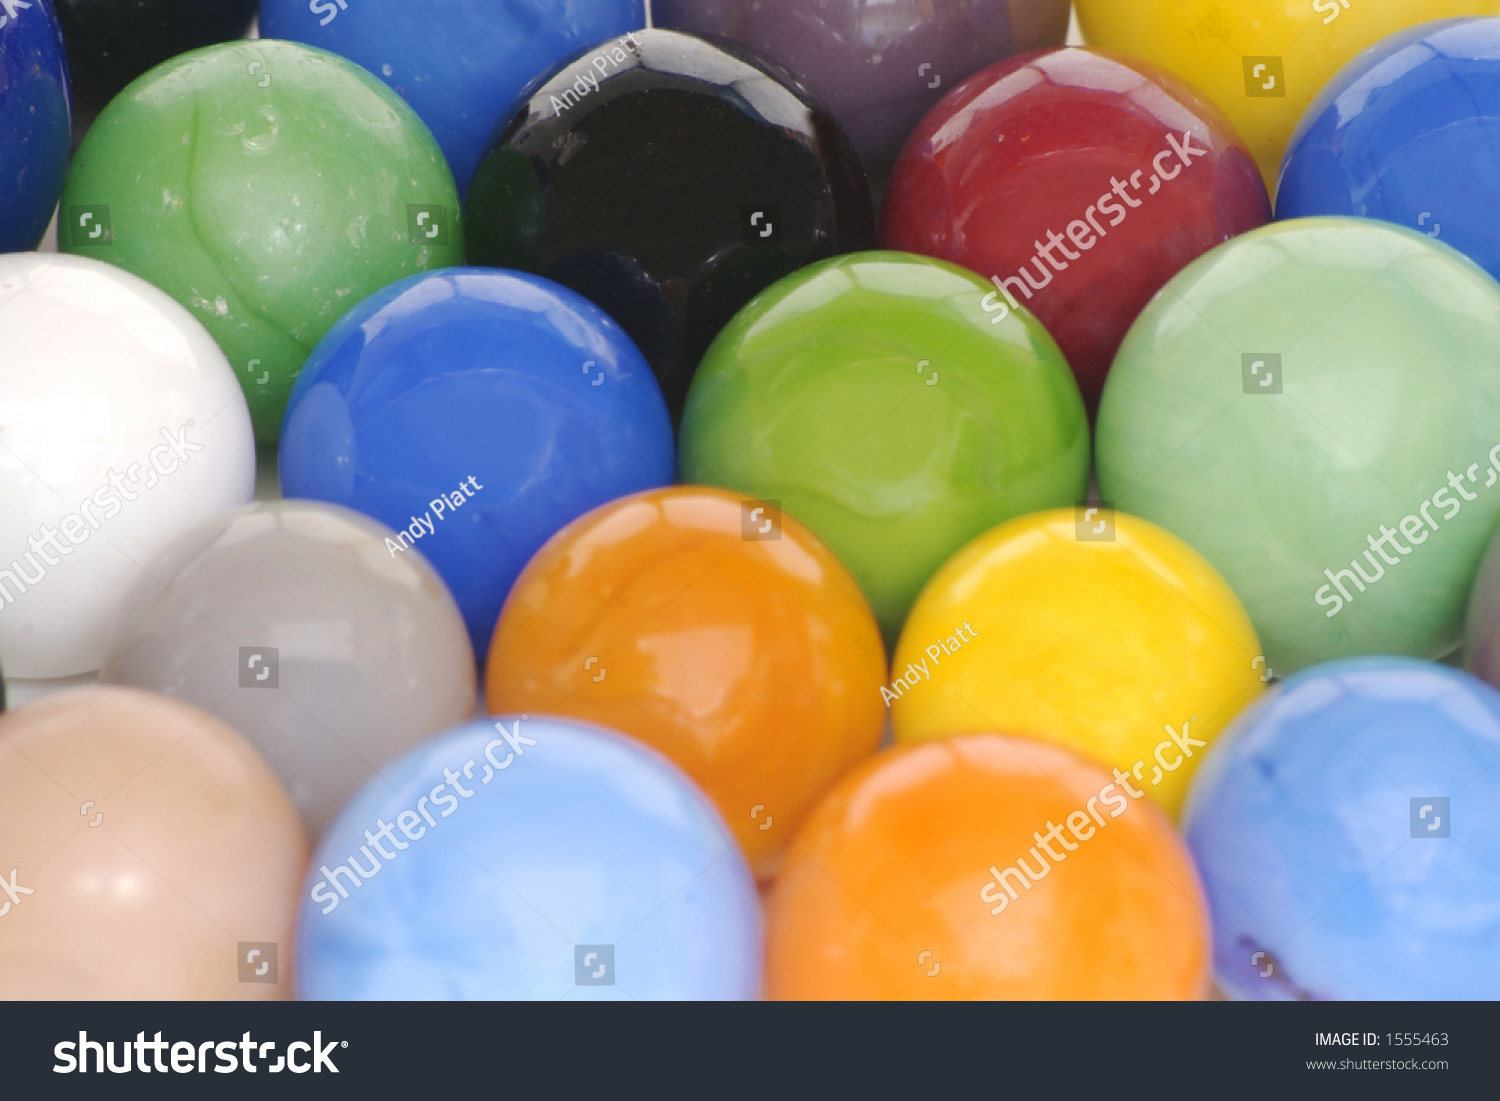 Bright Colored Marbles : A solid background of brightly colored toy glass marbles